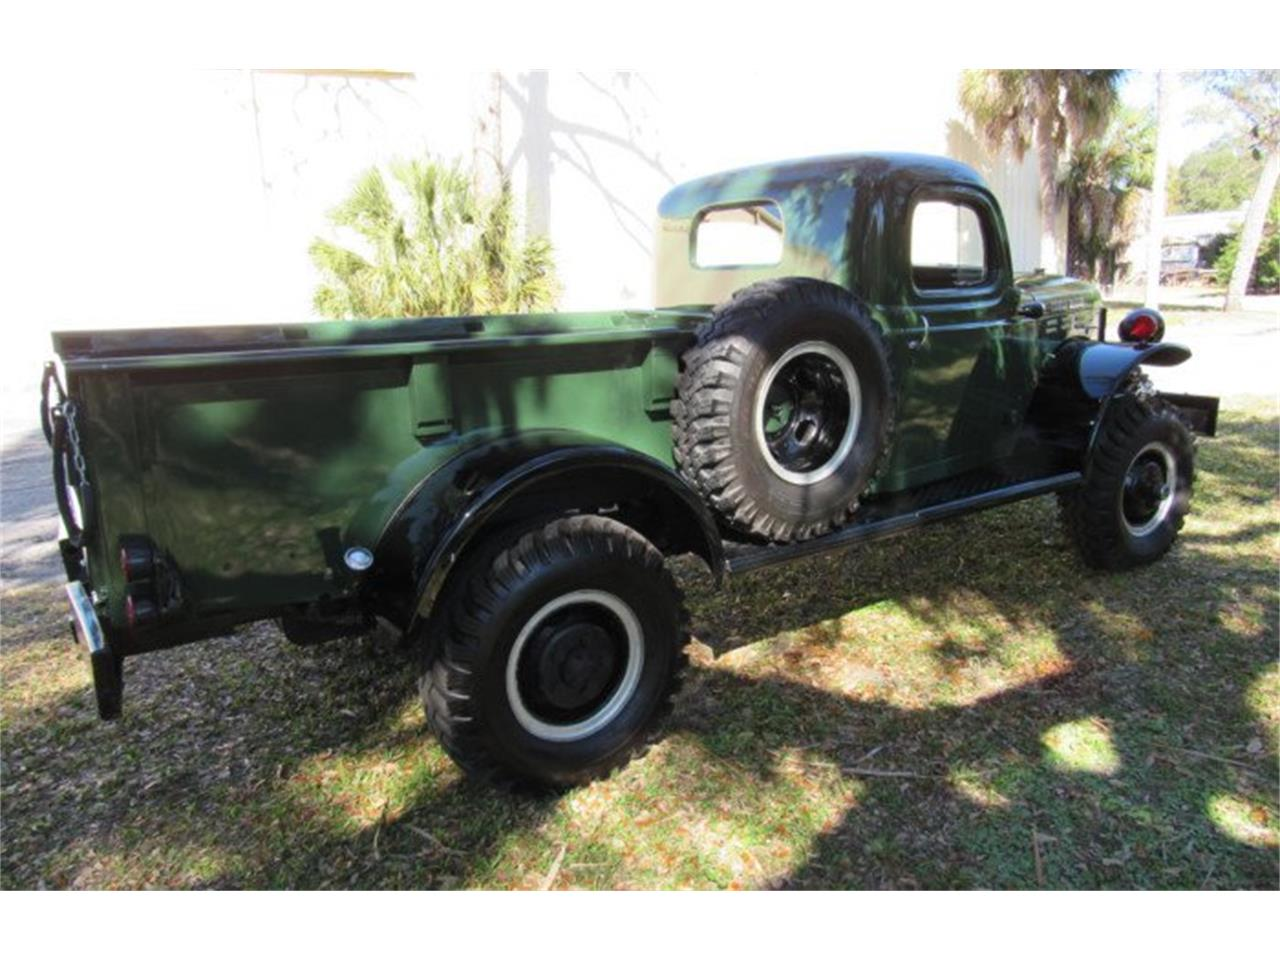 Large Picture of 1949 Dodge Power Wagon Auction Vehicle Offered by Premier Auction Group - PH13